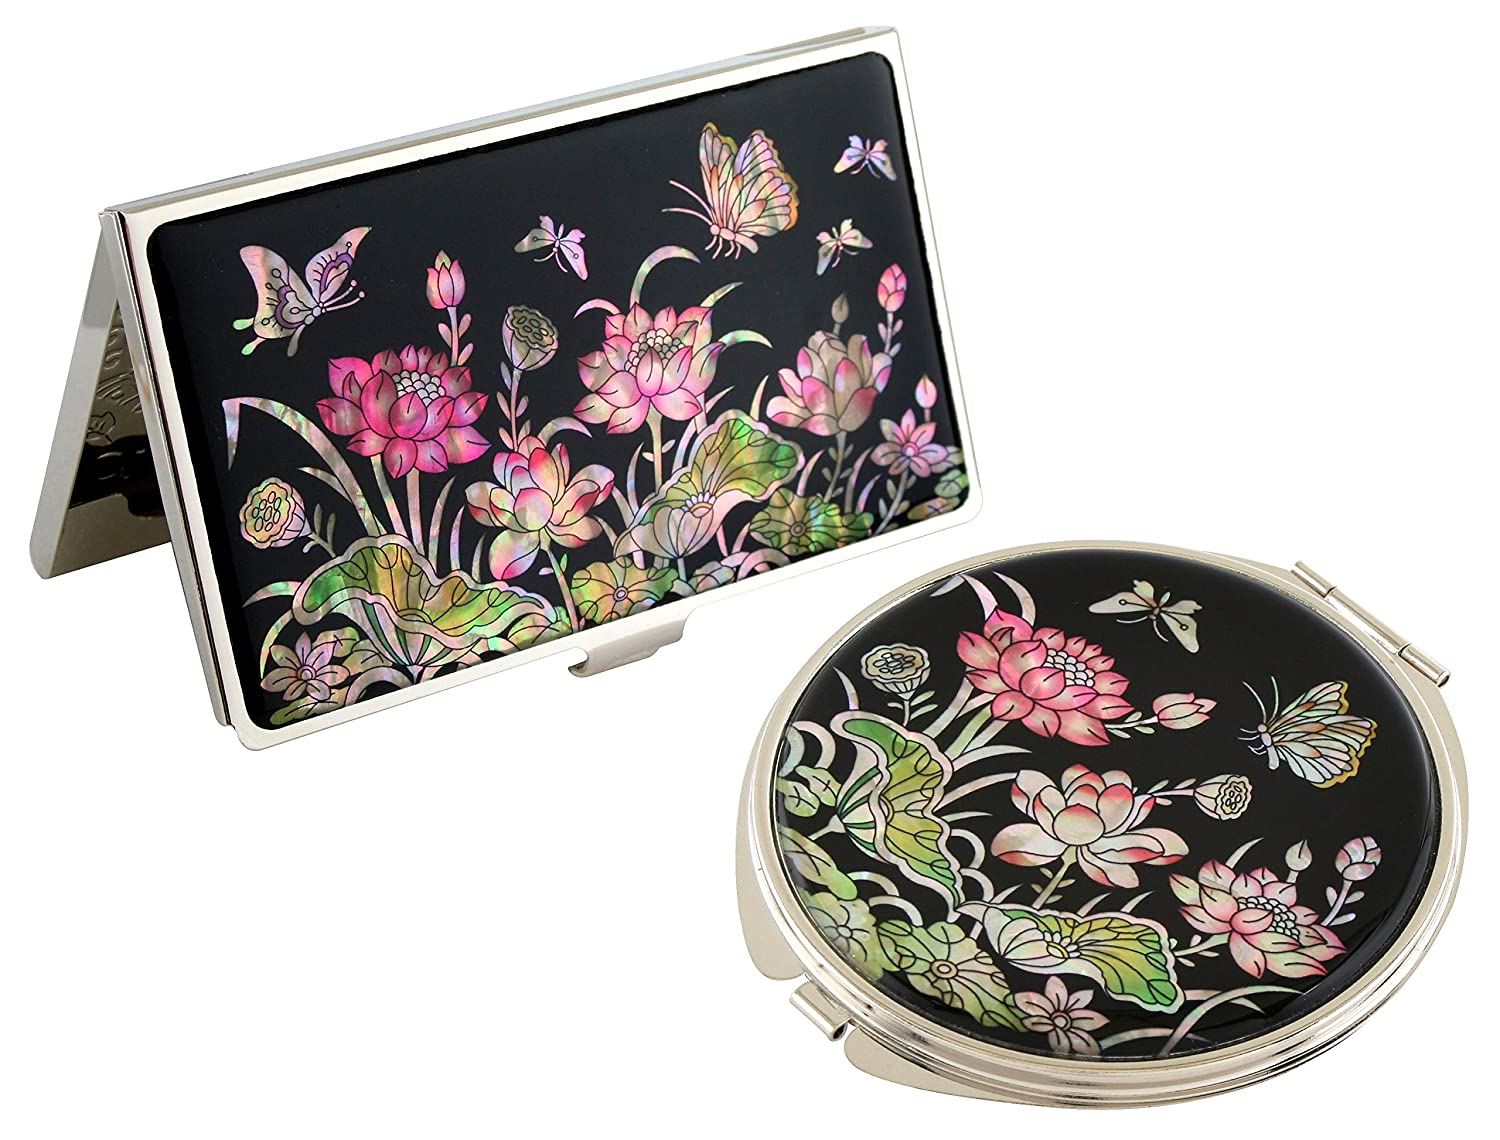 Mother of Pearl Rosa Lotus Flower Design Compact Mirror Card Business Credit Name Card Mirror Holder Set Stainless Steel Engraved Slim Id Money Case by Antique Alive card case 0f92ef